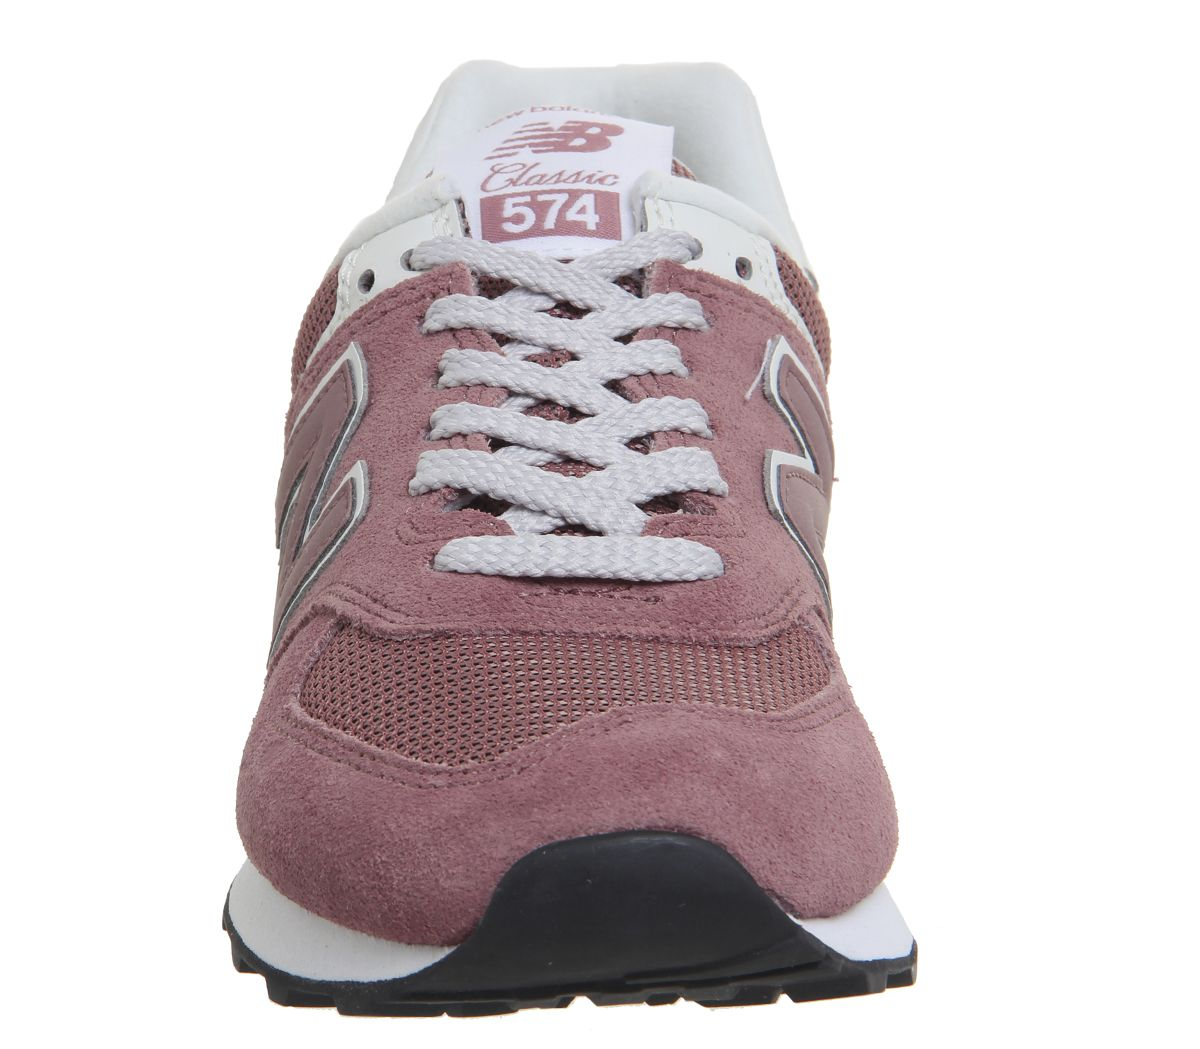 1812f8a91cba2 Womens New Balance 574 Trainers Dark Oxide Trainers Shoes